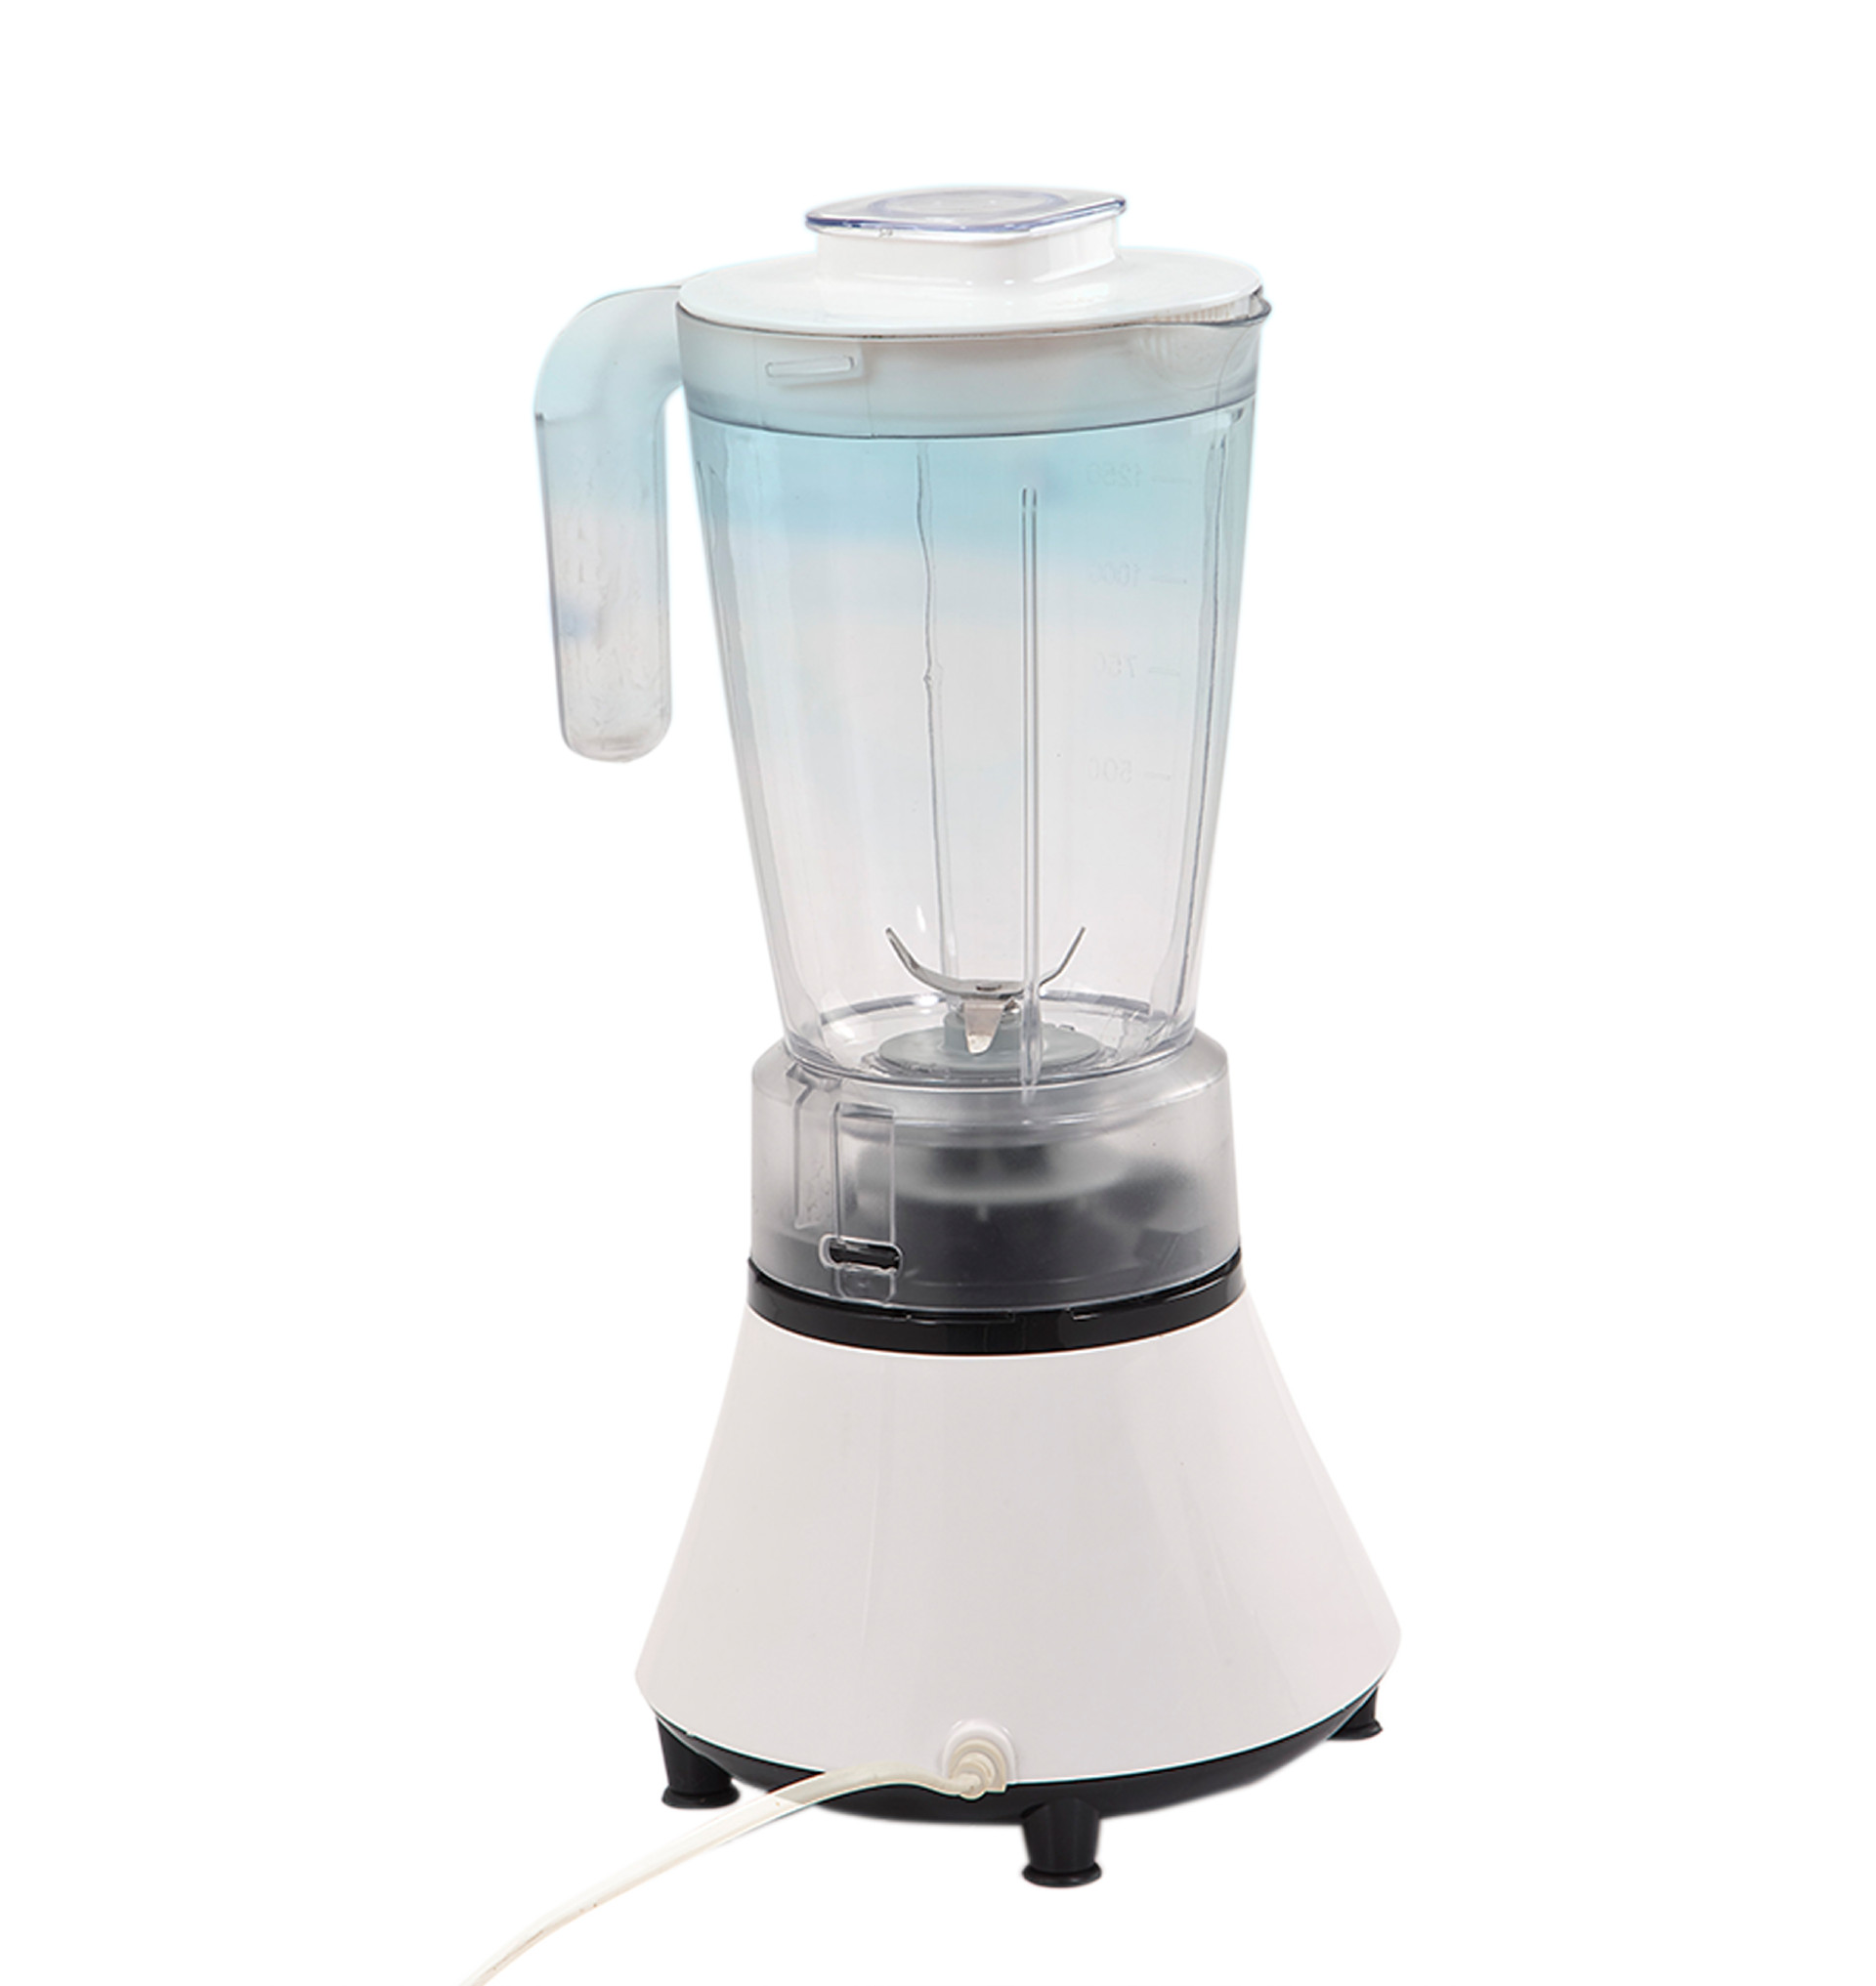 Geuwa Kitchen Appliance Blender Mill 2 in 1